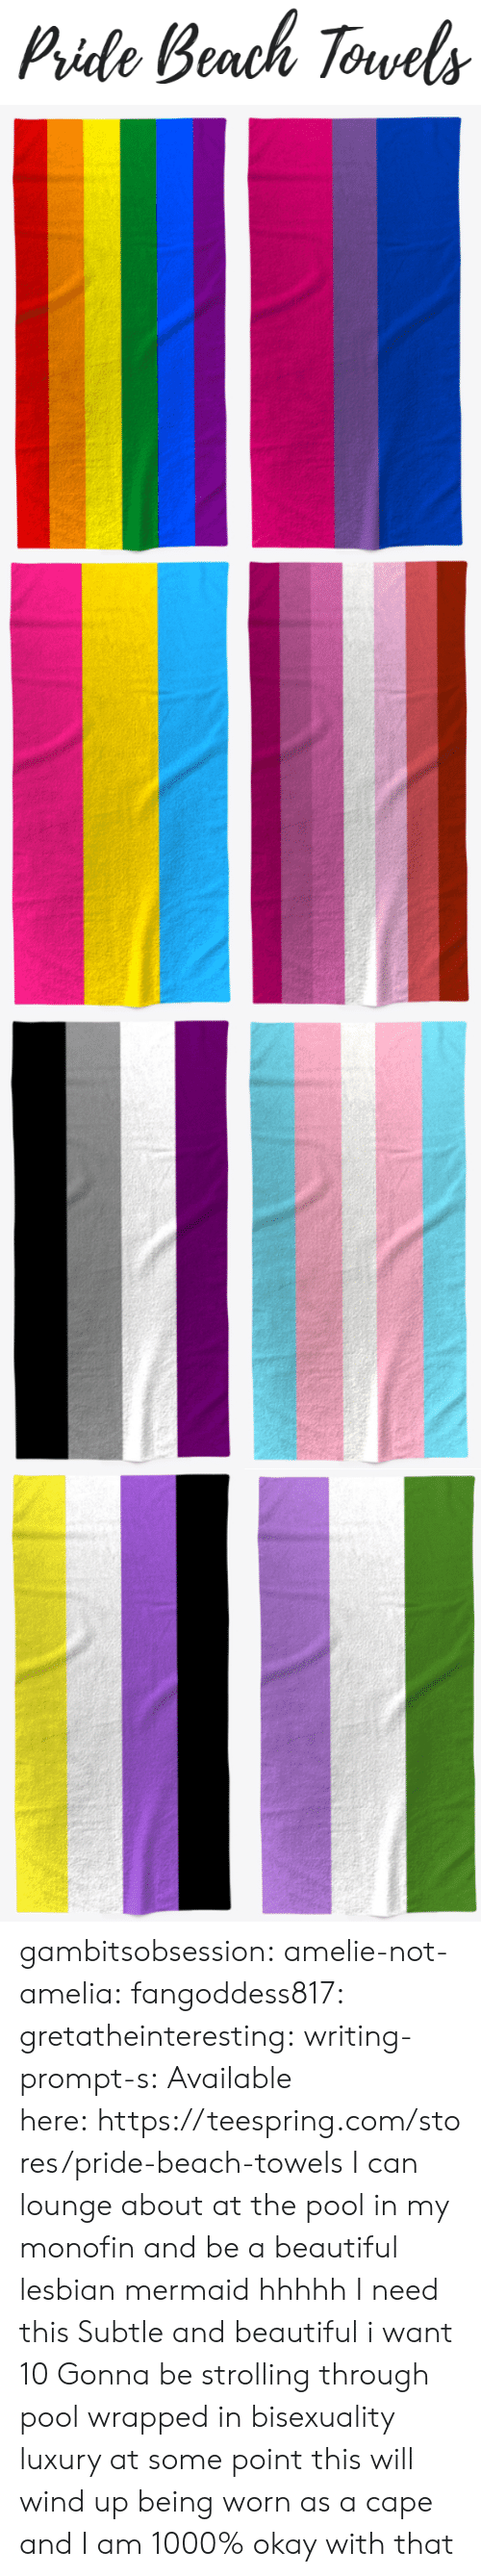 Beautiful, Tumblr, and Beach: Pide Beach Torvels gambitsobsession: amelie-not-amelia:   fangoddess817:   gretatheinteresting:   writing-prompt-s: Available here:https://teespring.com/stores/pride-beach-towels  I can lounge about at the pool in my monofin and be a beautiful lesbian mermaid hhhhh I need this   Subtle and beautiful i want 10   Gonna be strolling through pool wrapped in bisexuality luxury    at some point this will wind up being worn as a cape and I am 1000% okay with that